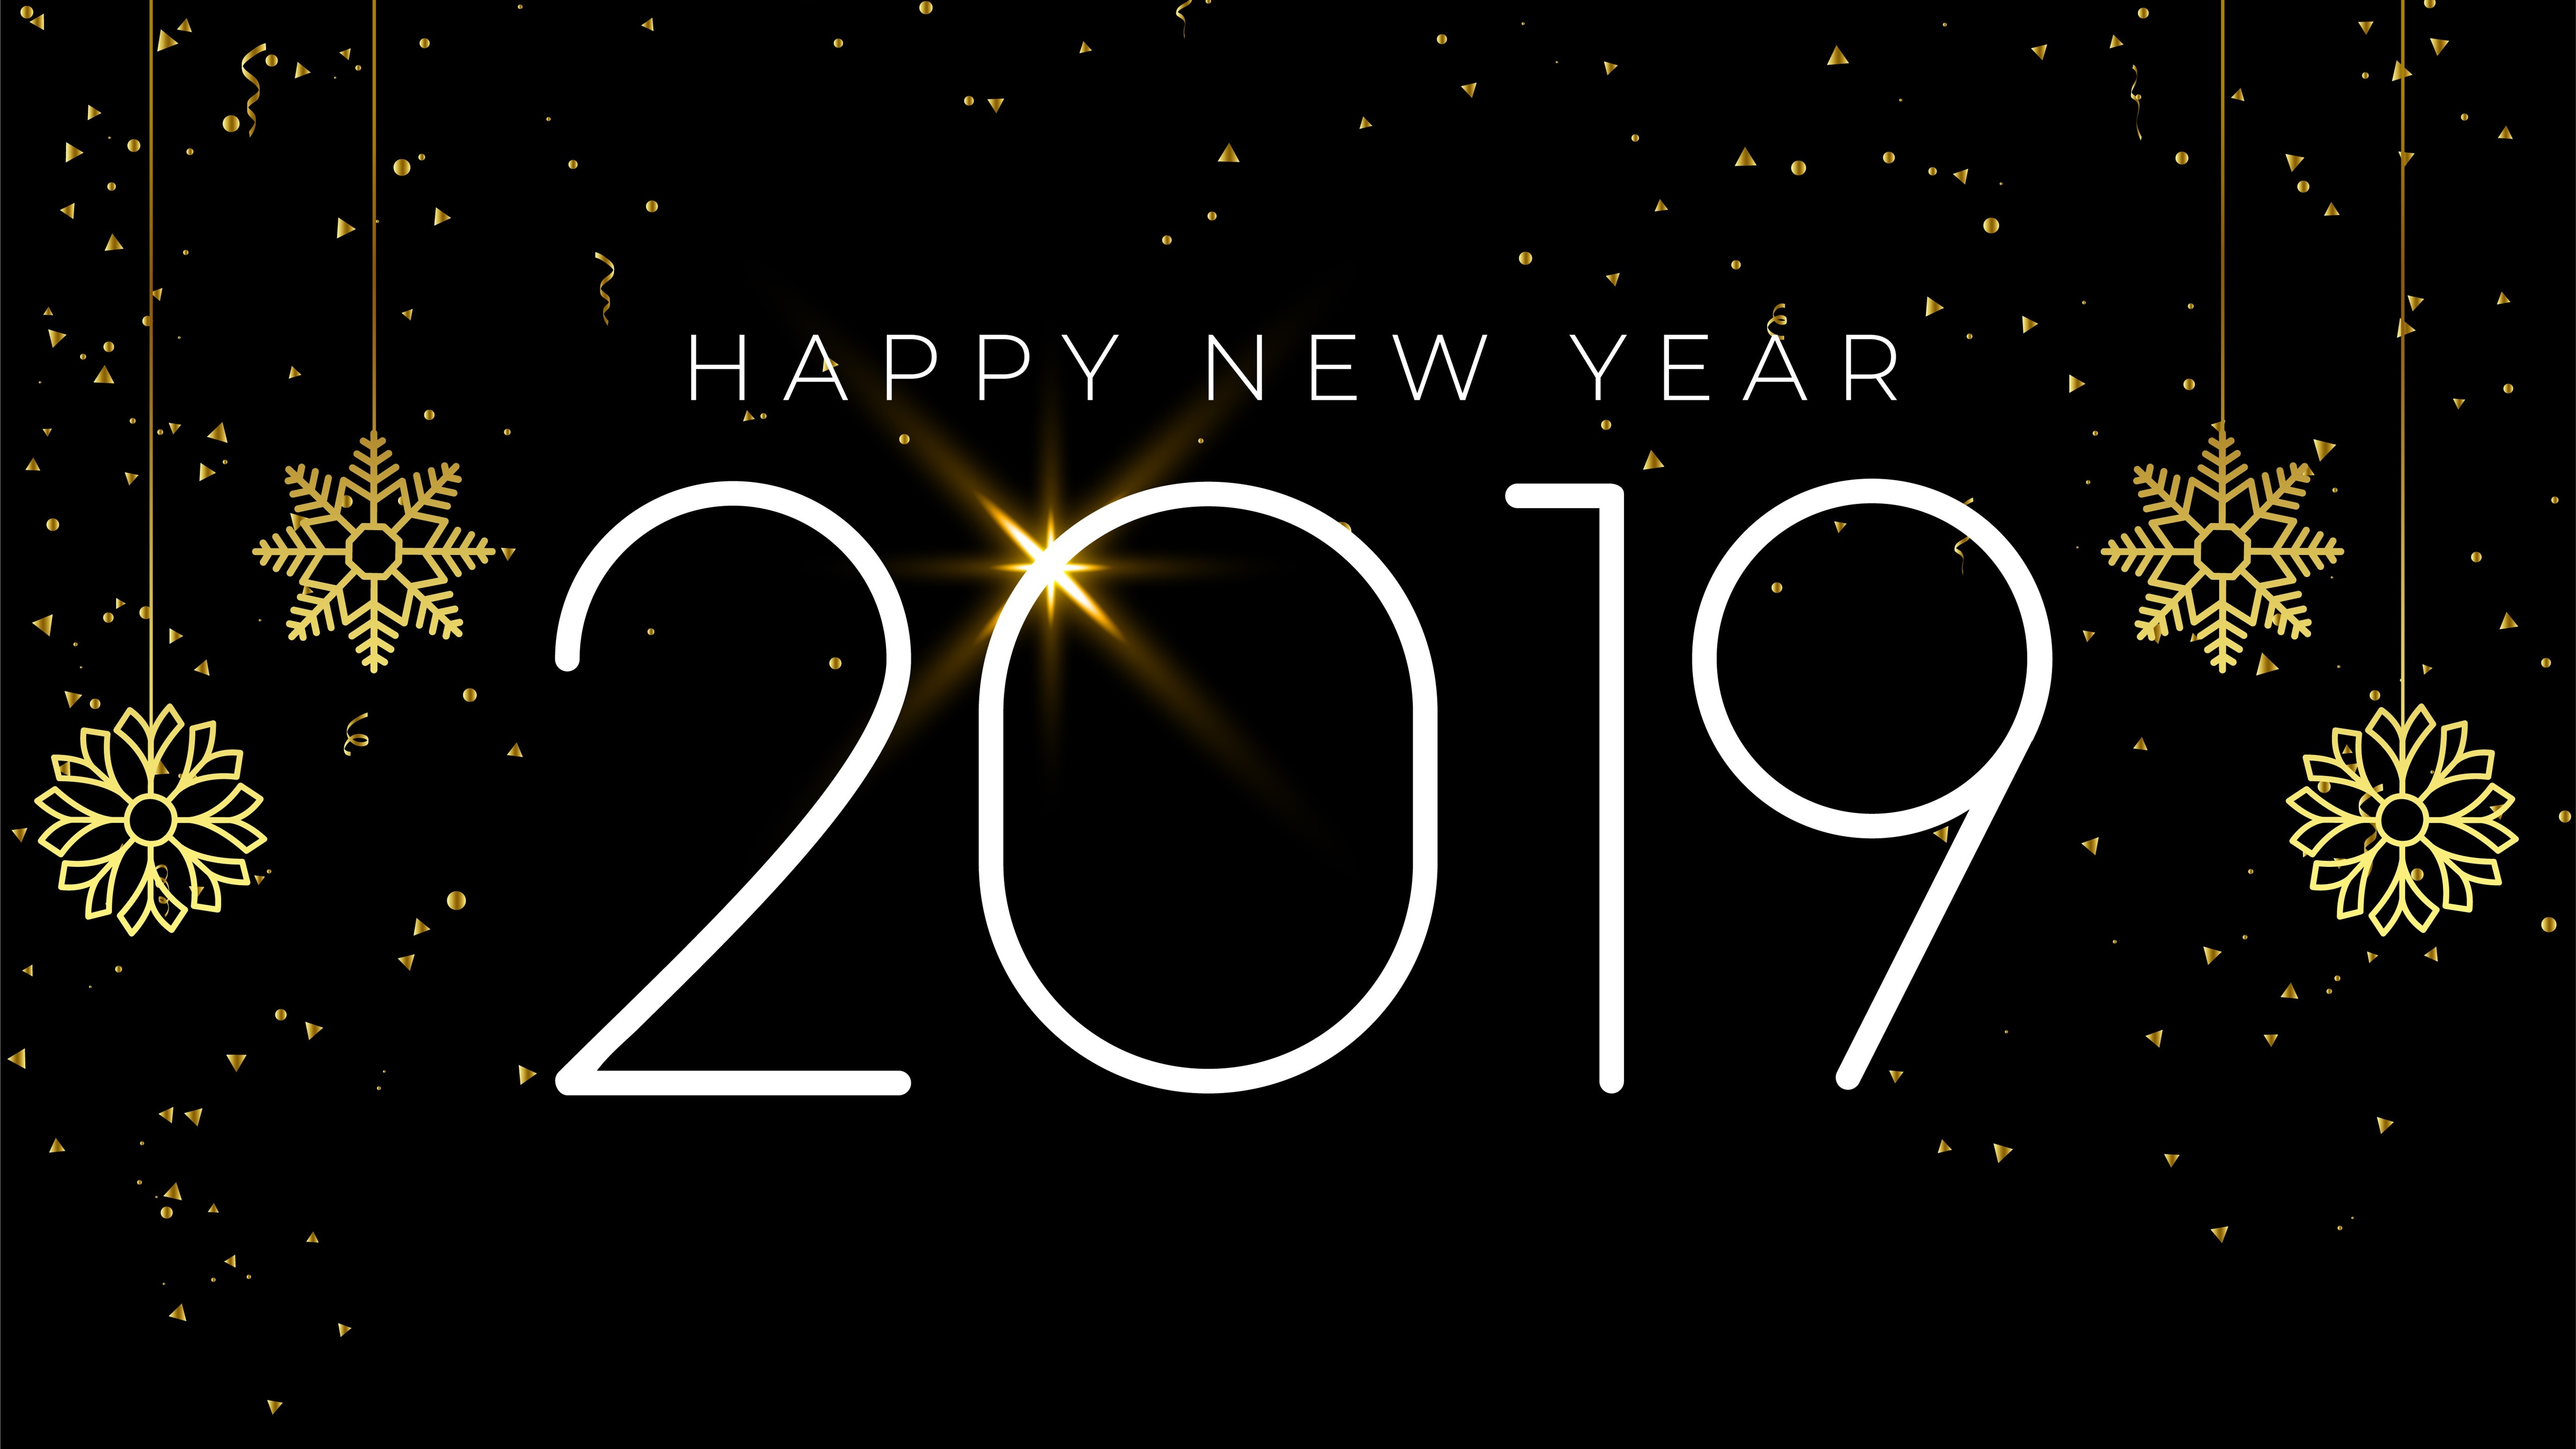 Wallpaper Happy New Year 2019, snowflakes, simple style 5120x2880